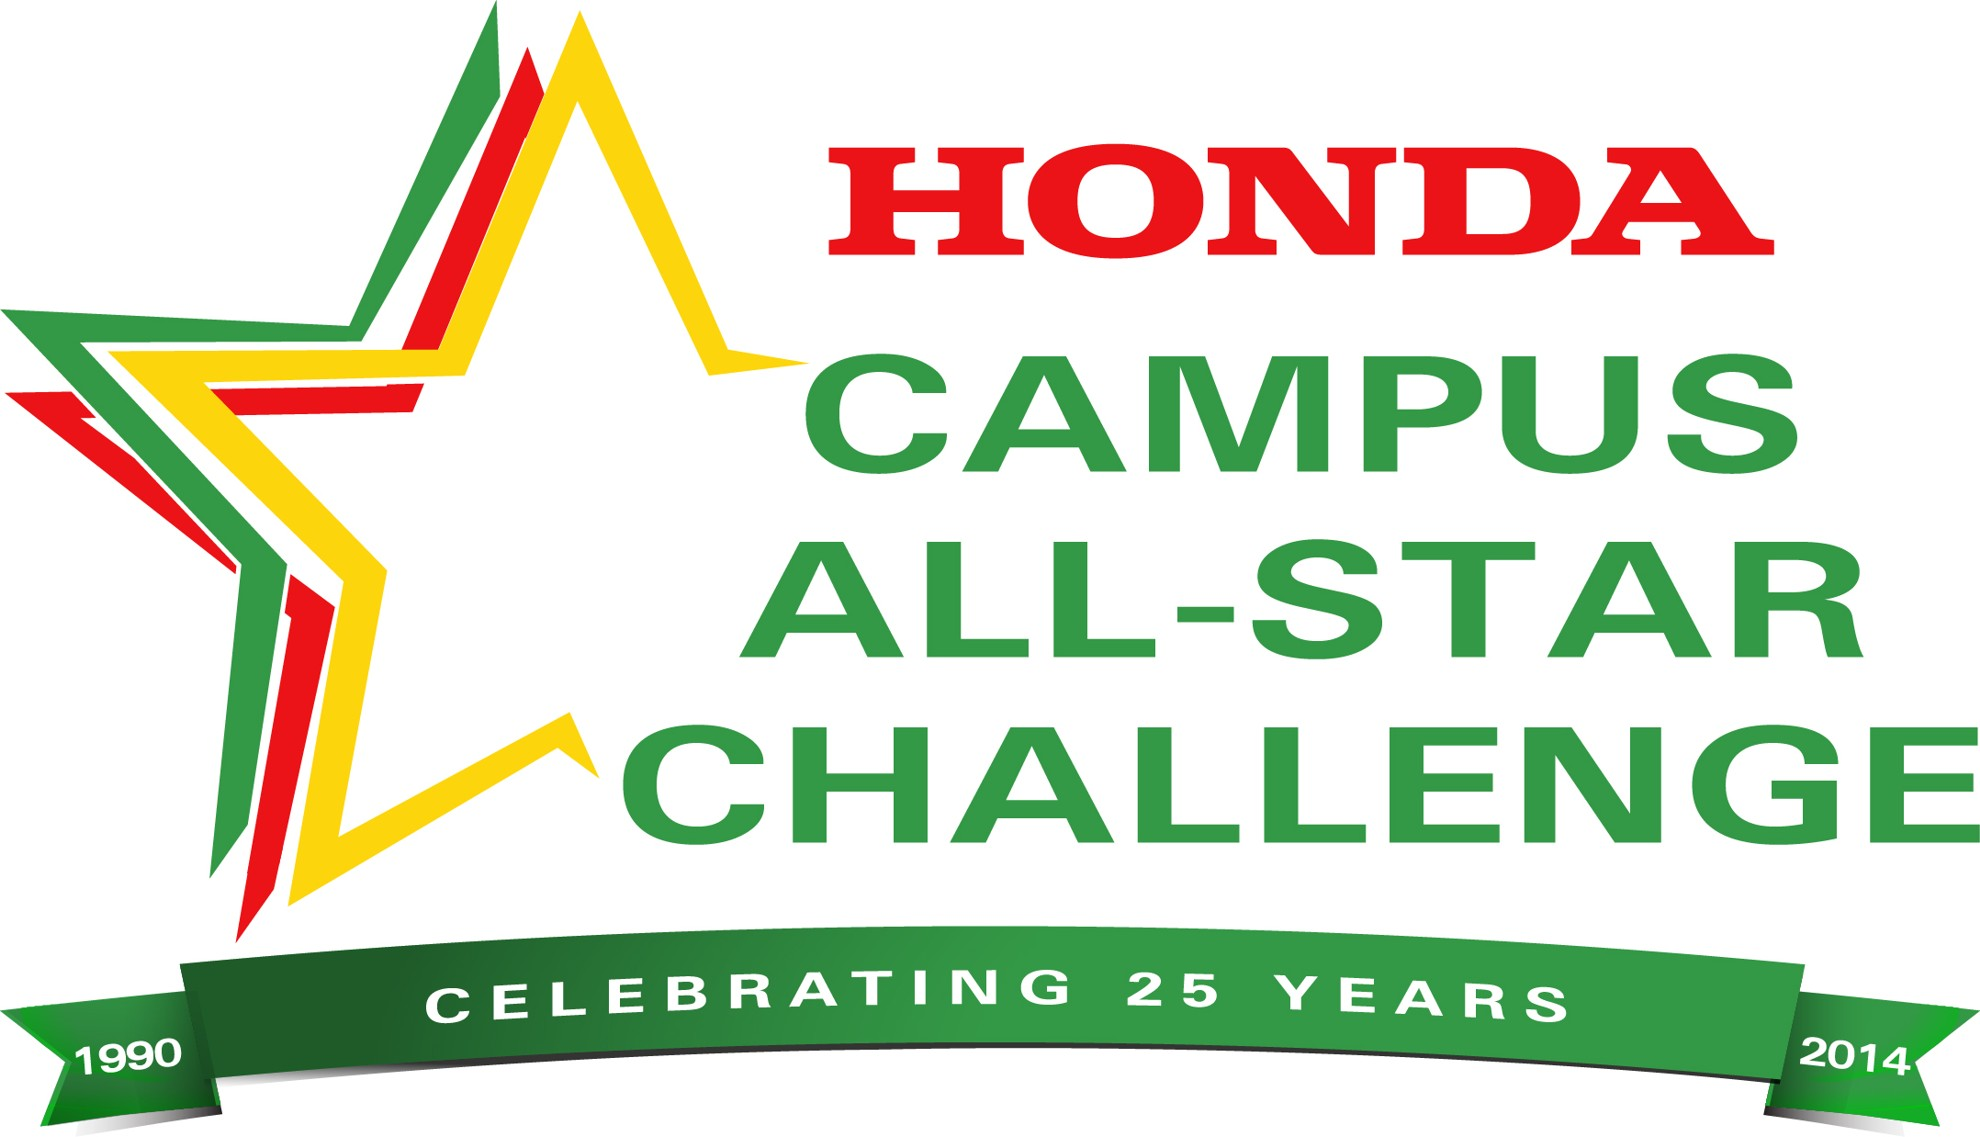 Honda_Campus_All-Star_Challenge